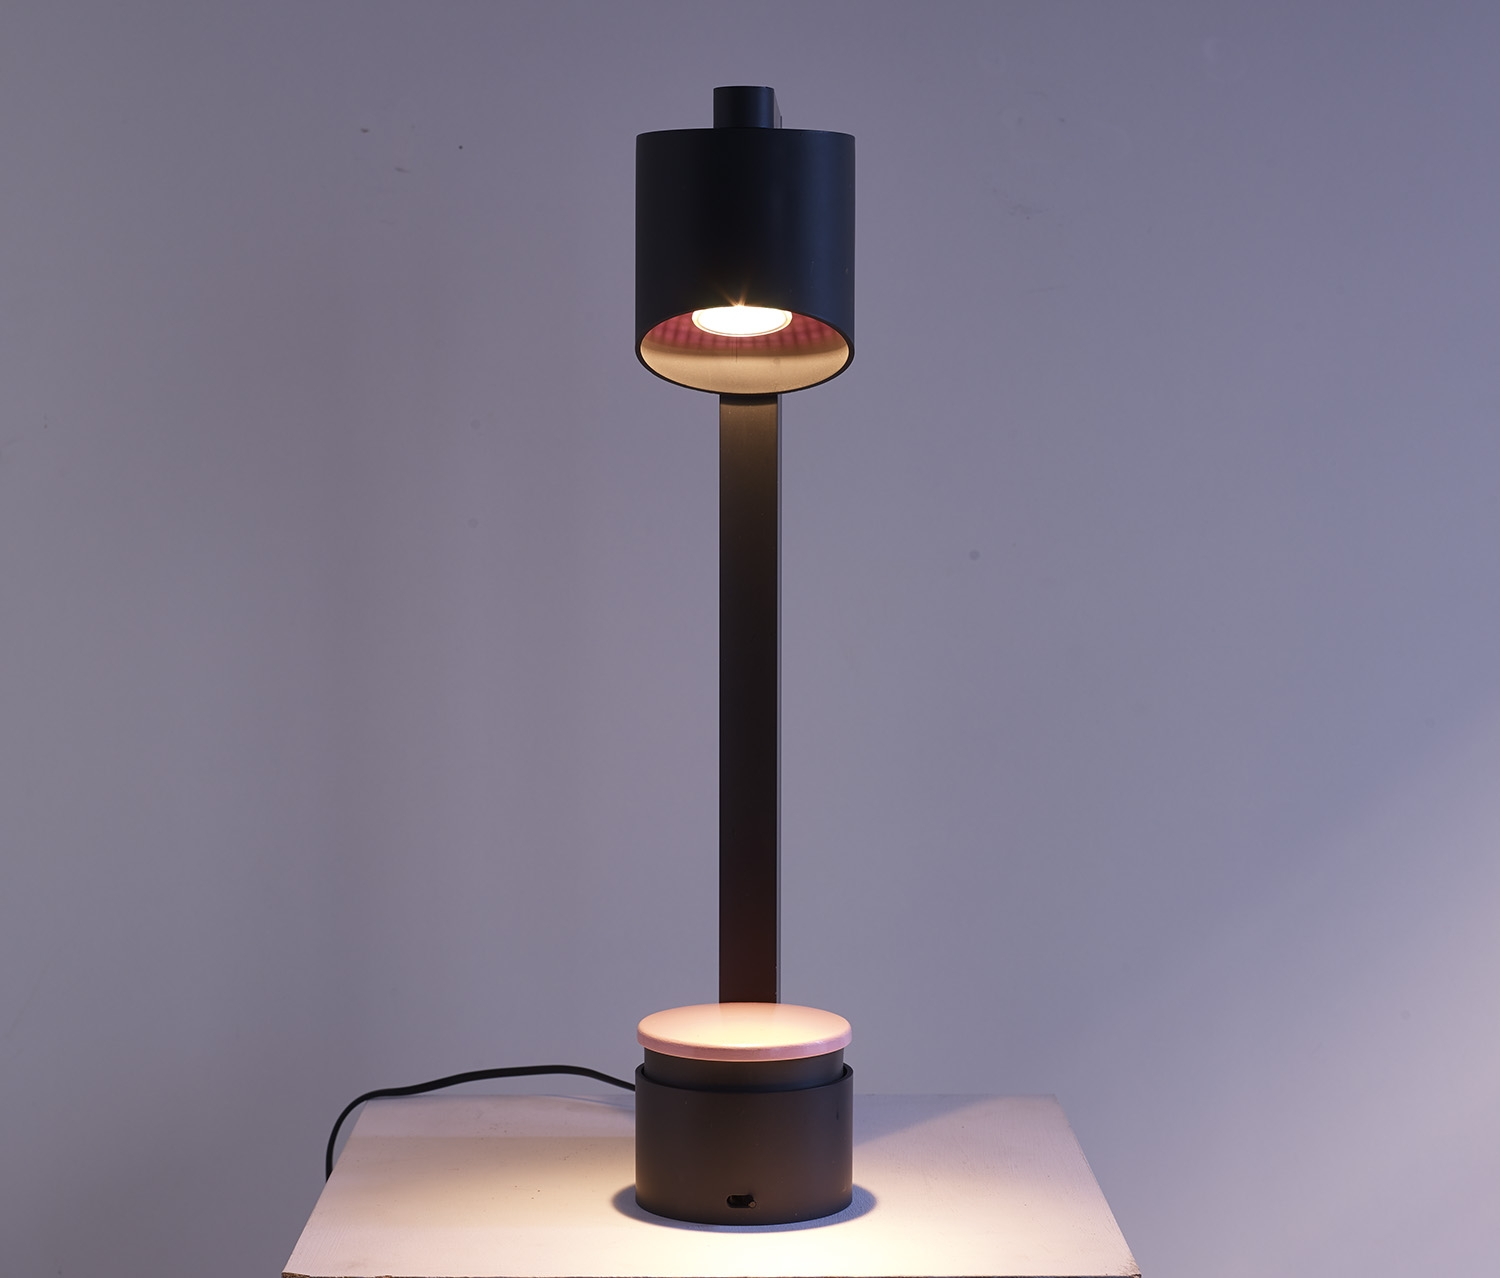 lampe-de-table-ring-de-jean-pierre-vitrac-1985-image-02